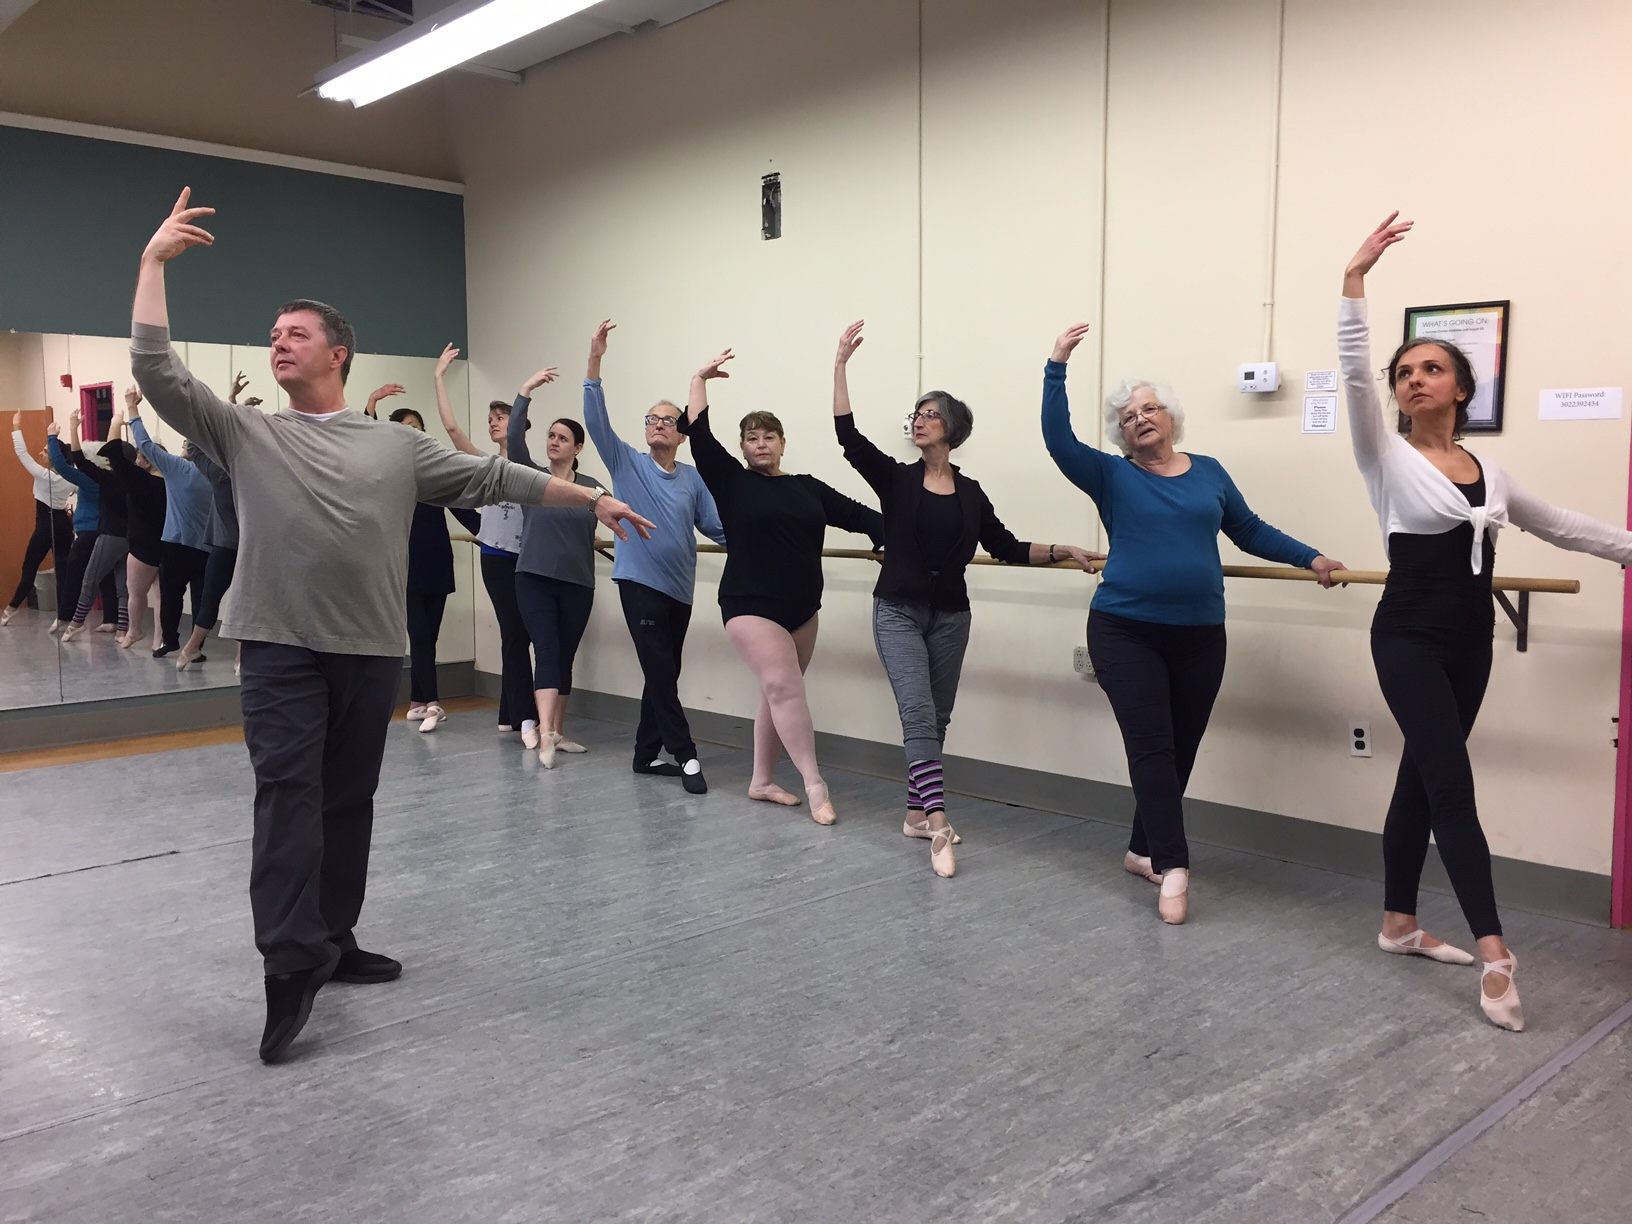 Ballet for Adults - Taught by Val GoncharovTry our Adult Ballet Classes on Tuesday mornings from 10:00am-11:15am and Thursday evenings from 6:30-7:45pm.HOW DOES IT WORK?$17 for first class to try it out, $20 drop in fee or $17 per class if paying monthly. Must register in class and pay teacher all required fees. Students of all abilities can join this twice weekly class and follow along with ballet moves to help you improve balance and grace in your movements.